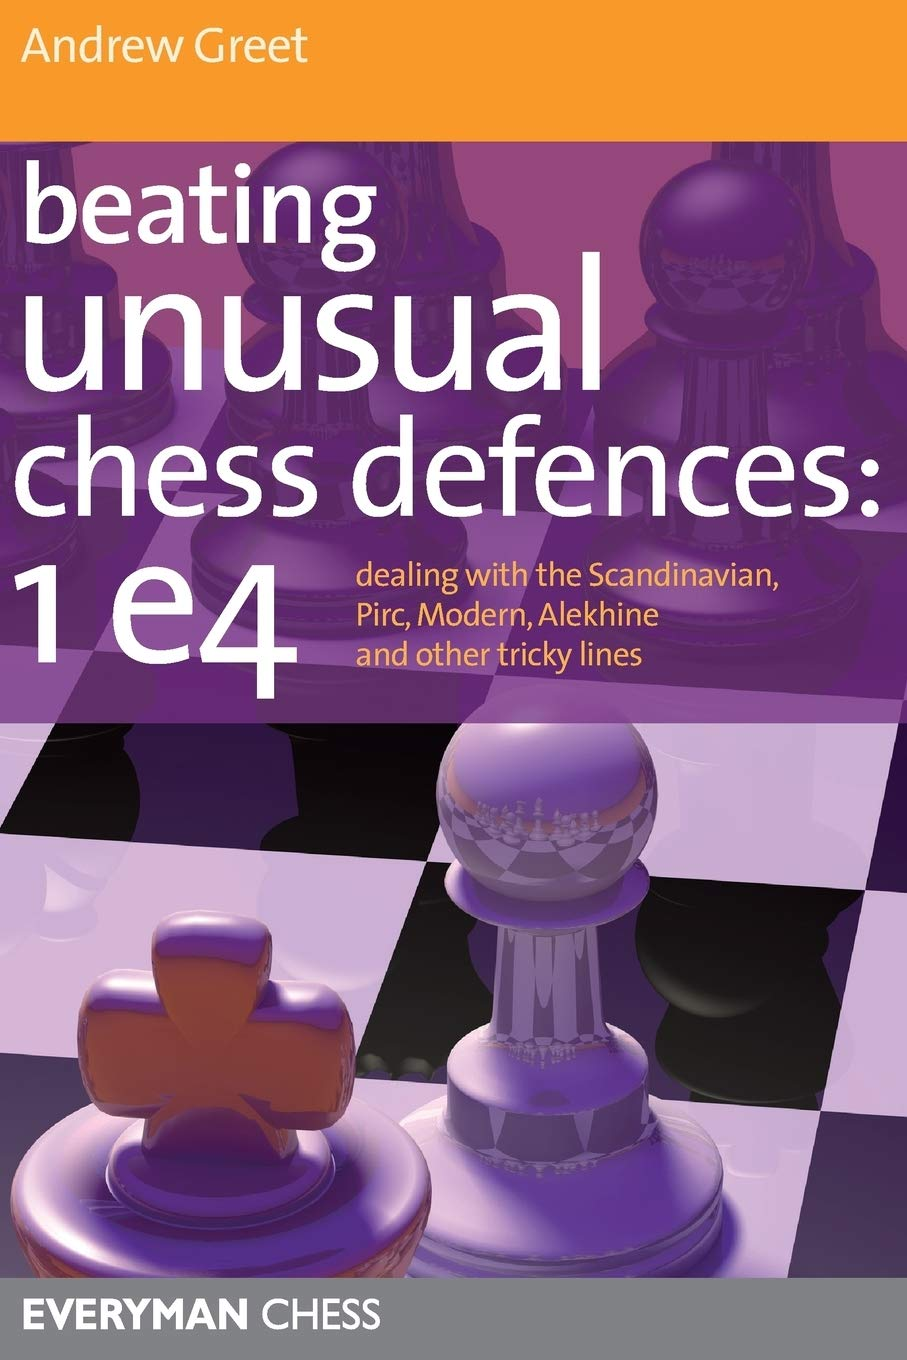 Beating Unusual Chess Defences to 1.e4, Andrew Greet, Everyman, 2011